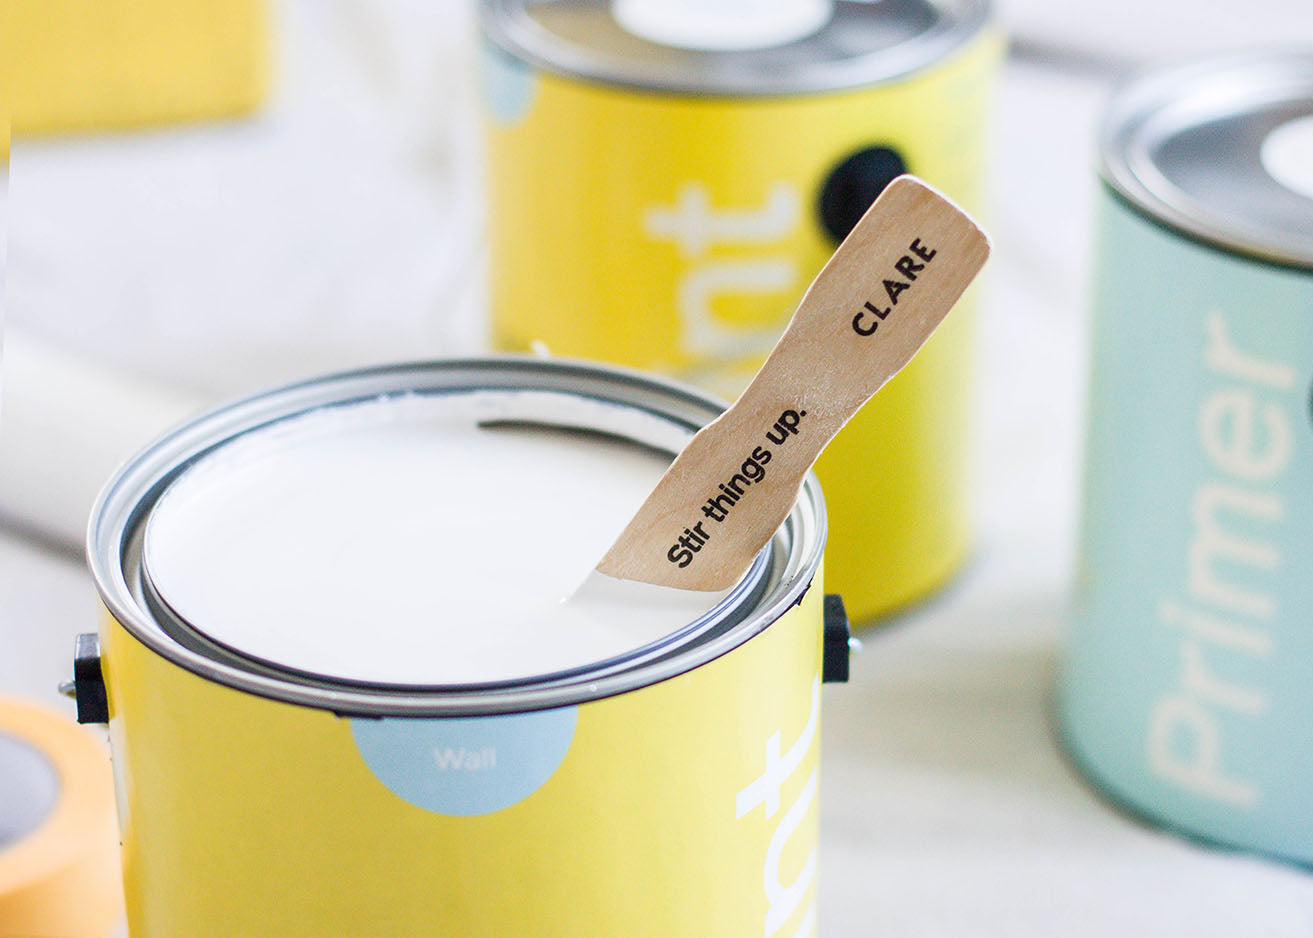 Here's a list of the essential paint supplies you need to paint a room like a pro, plus tips on choosing best supplies for flawless results.